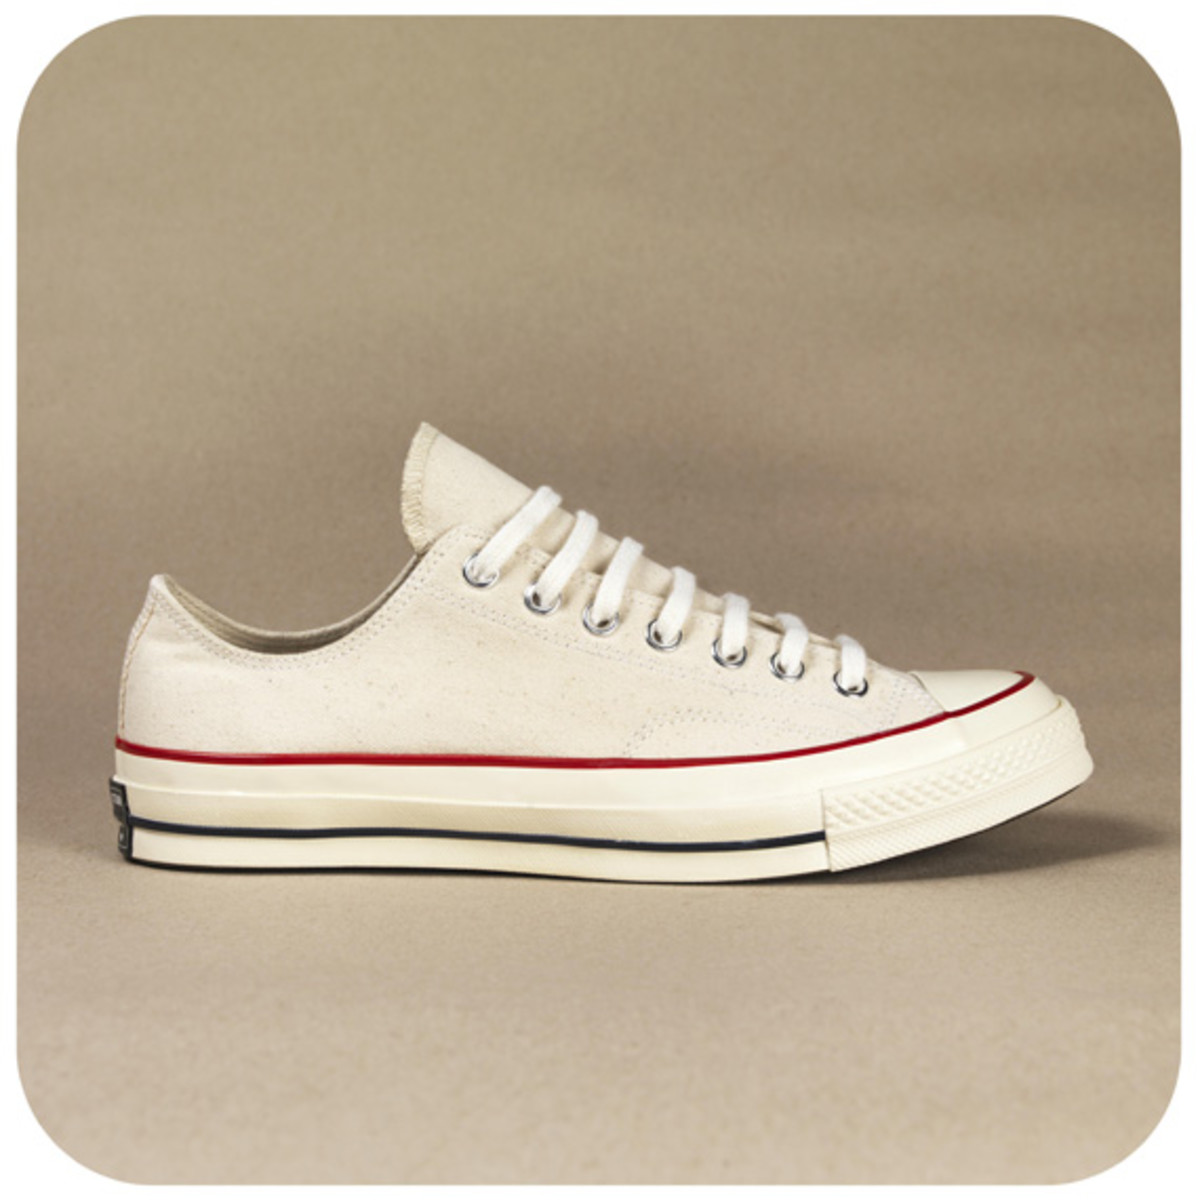 converse-first-string-1970s-chuck-taylor-all-star-04